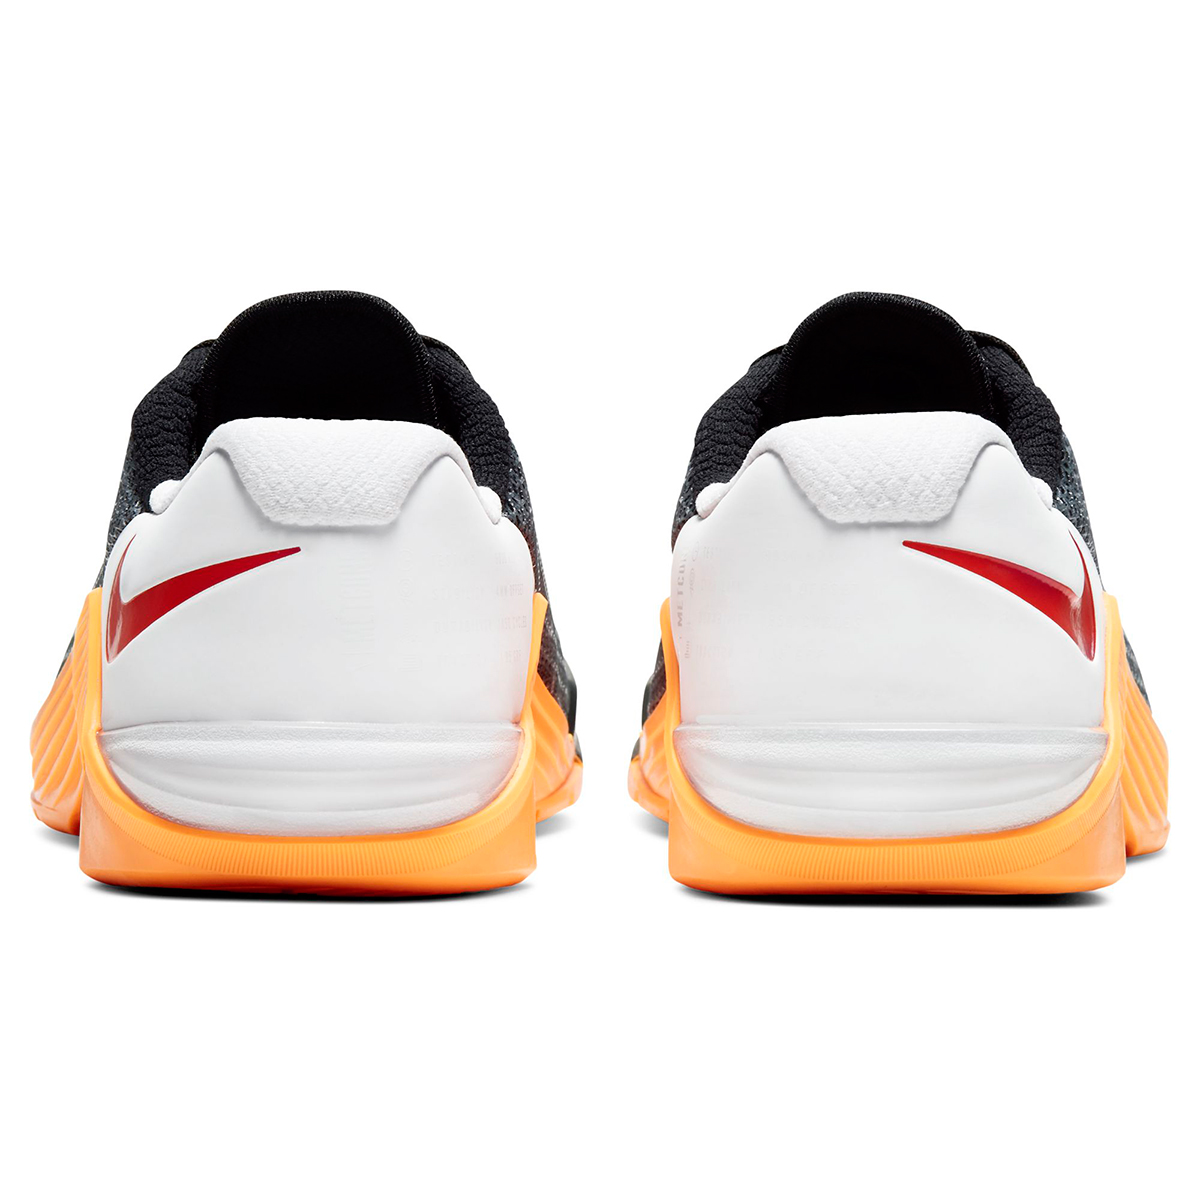 Women's Nike Metcon 5 Training Shoes - Color: Black/White/Laser Orange/Team Orange (Regular Width) - Size: 5, Black/White/Laser Orange/Team Orange, large, image 3